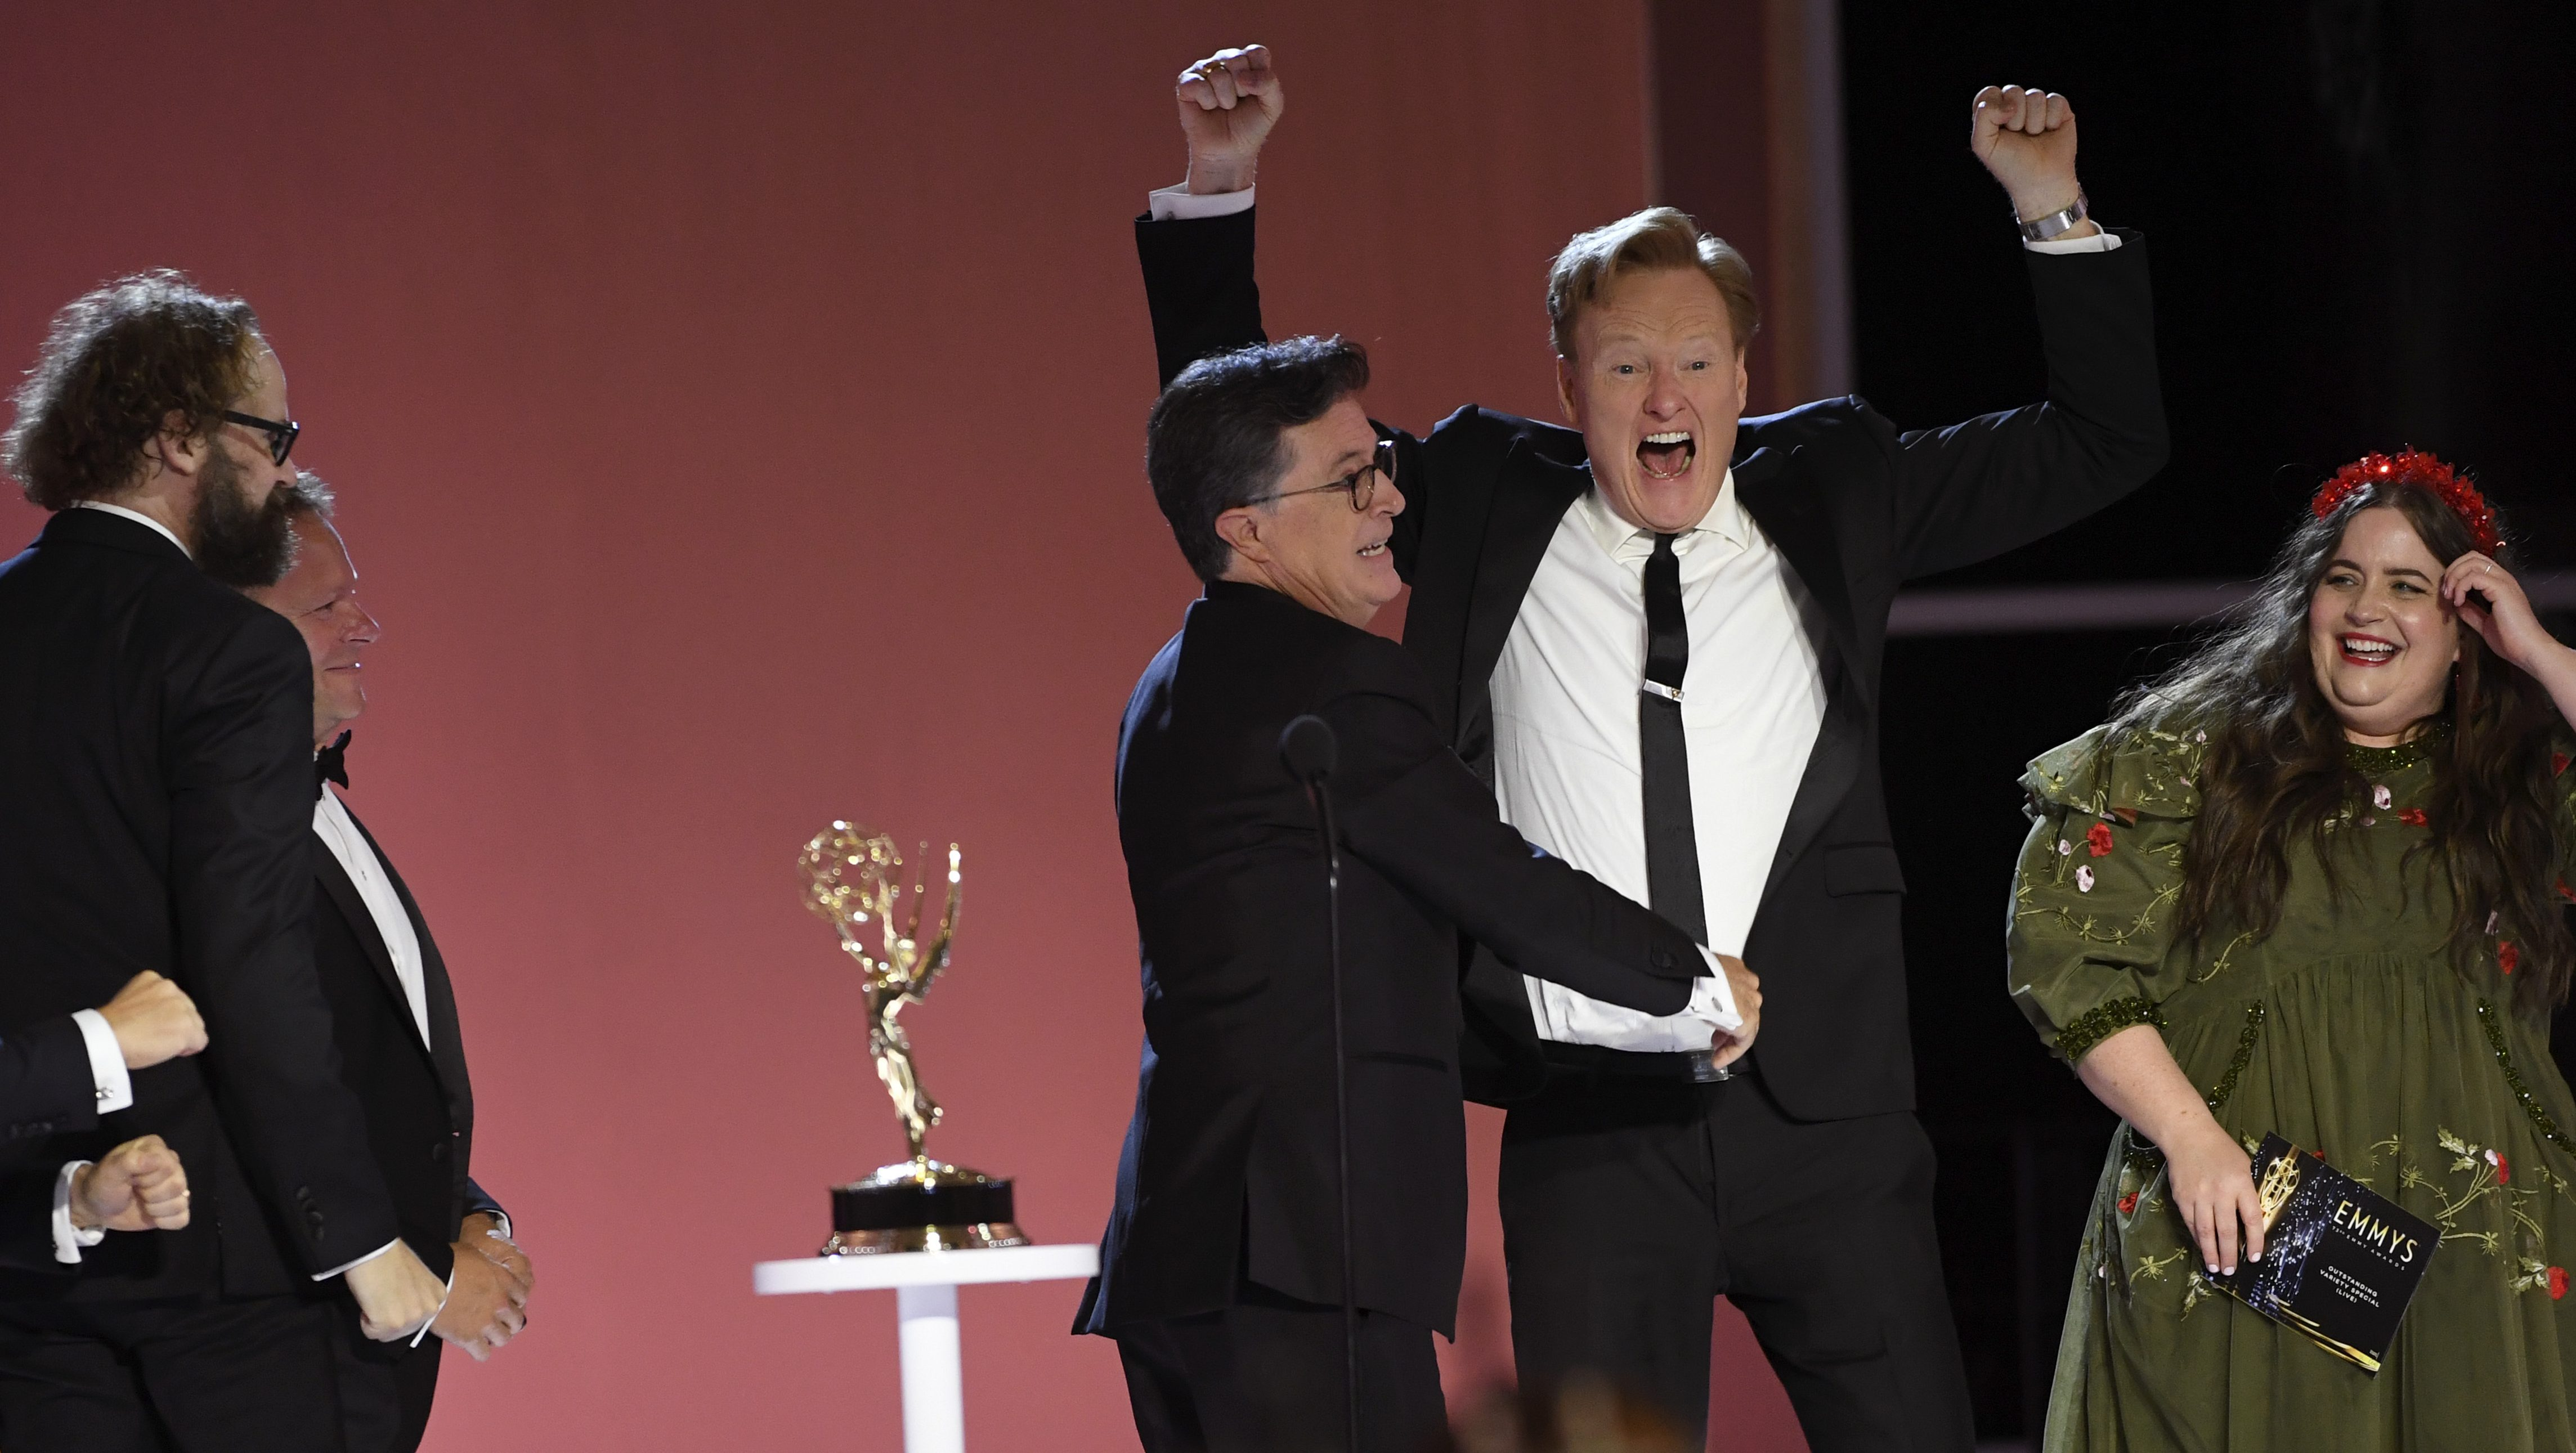 Conan O'Brien, Biz Markie & The Emmy Losers Support Group Among Best Moments Of The 2021 Emmys